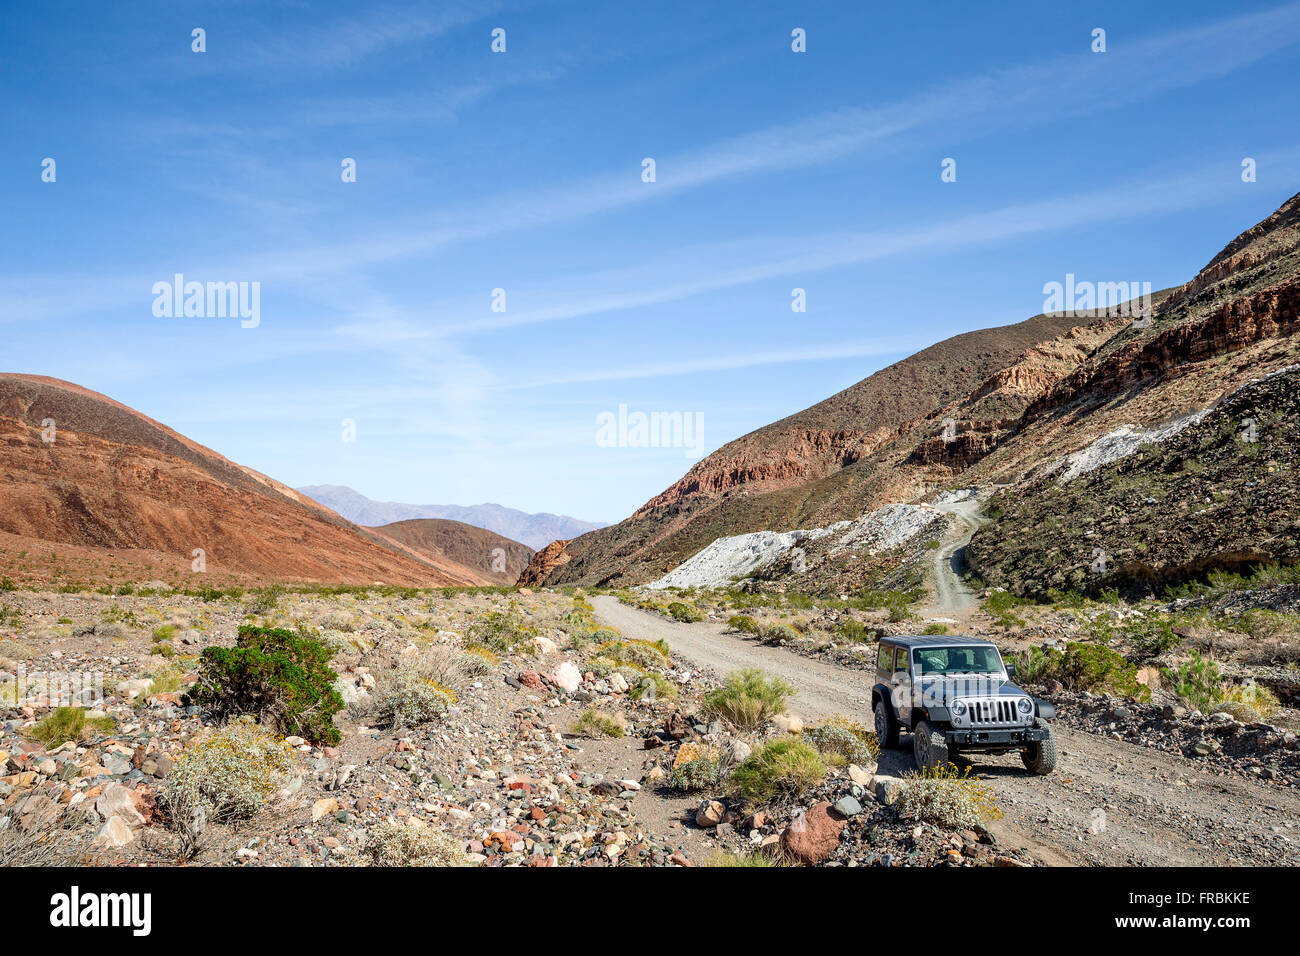 The backcountry road along Warm Springs Canyon in Death